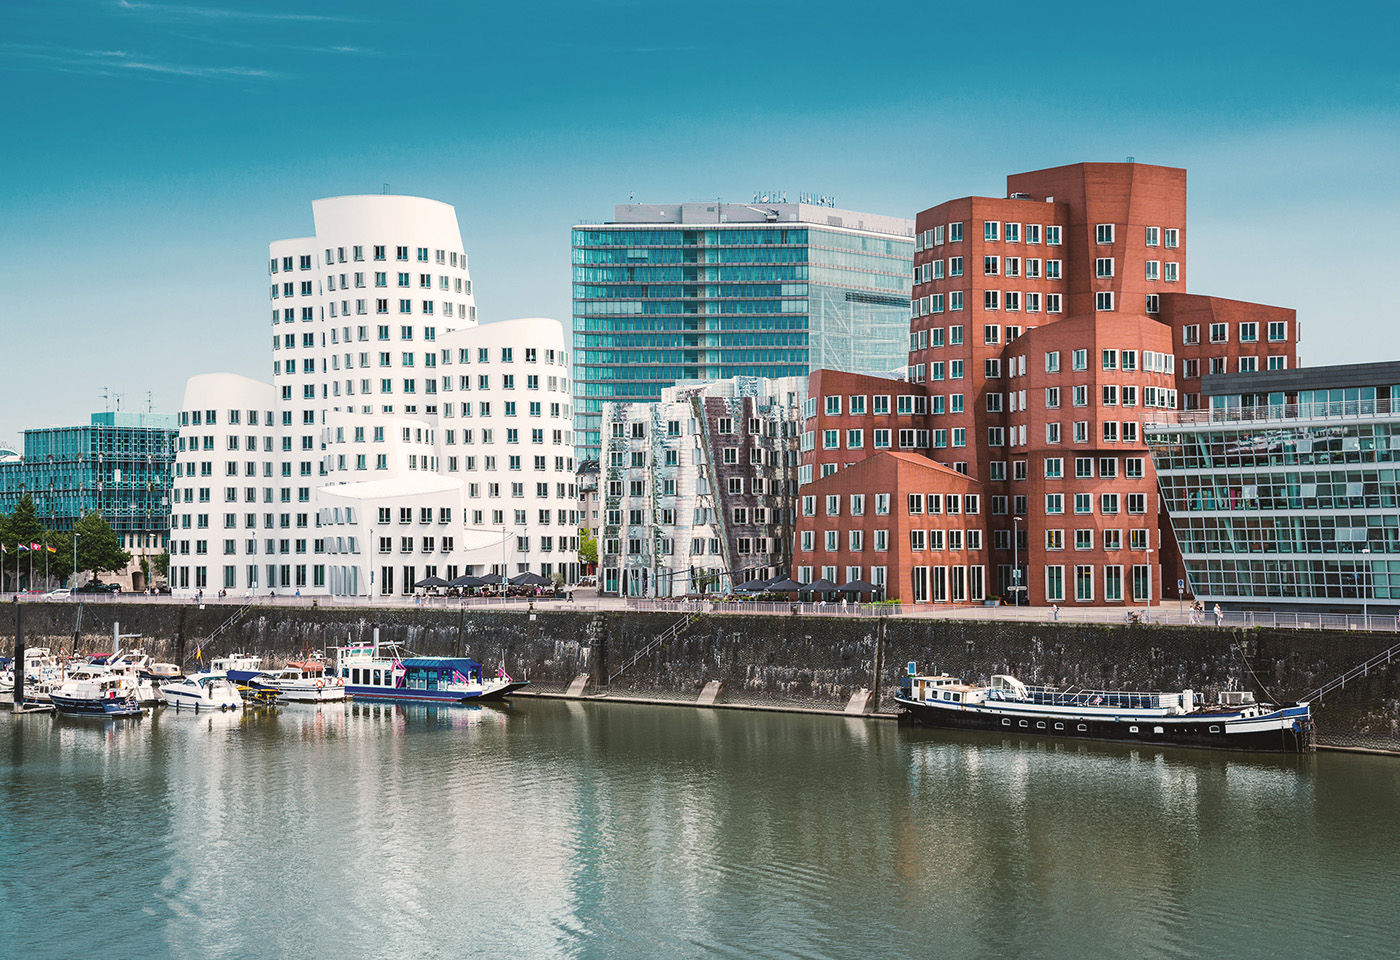 Temporary living in Düsseldorf Medienhafen: first-class architecture, pubs, restaurants, central location, serviced apartments